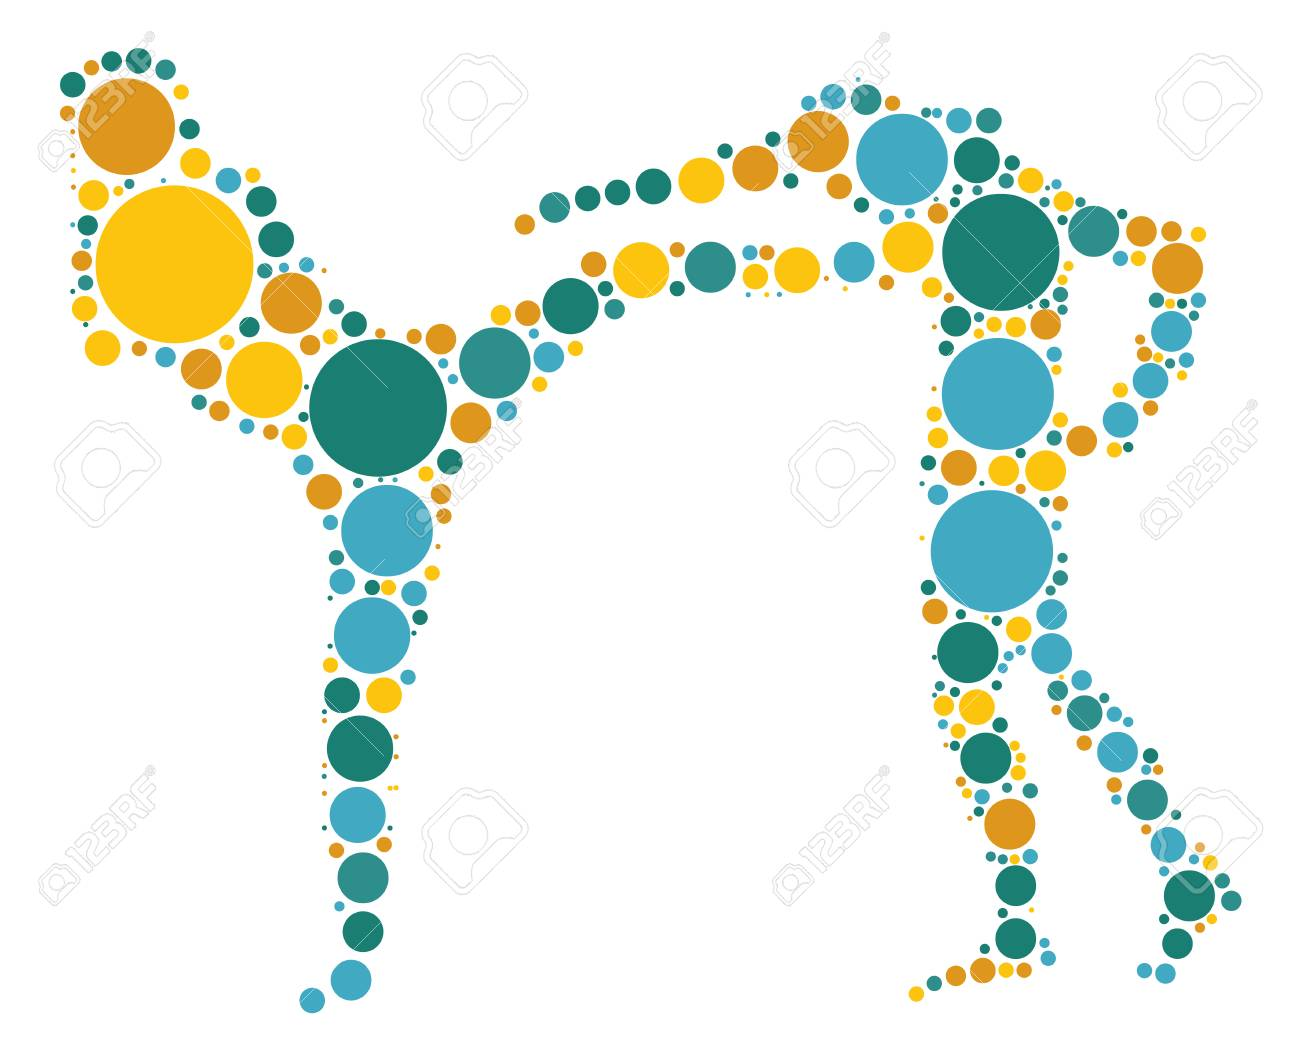 Muay Thai Shape Design By Color Point Royalty Free Cliparts Vectors